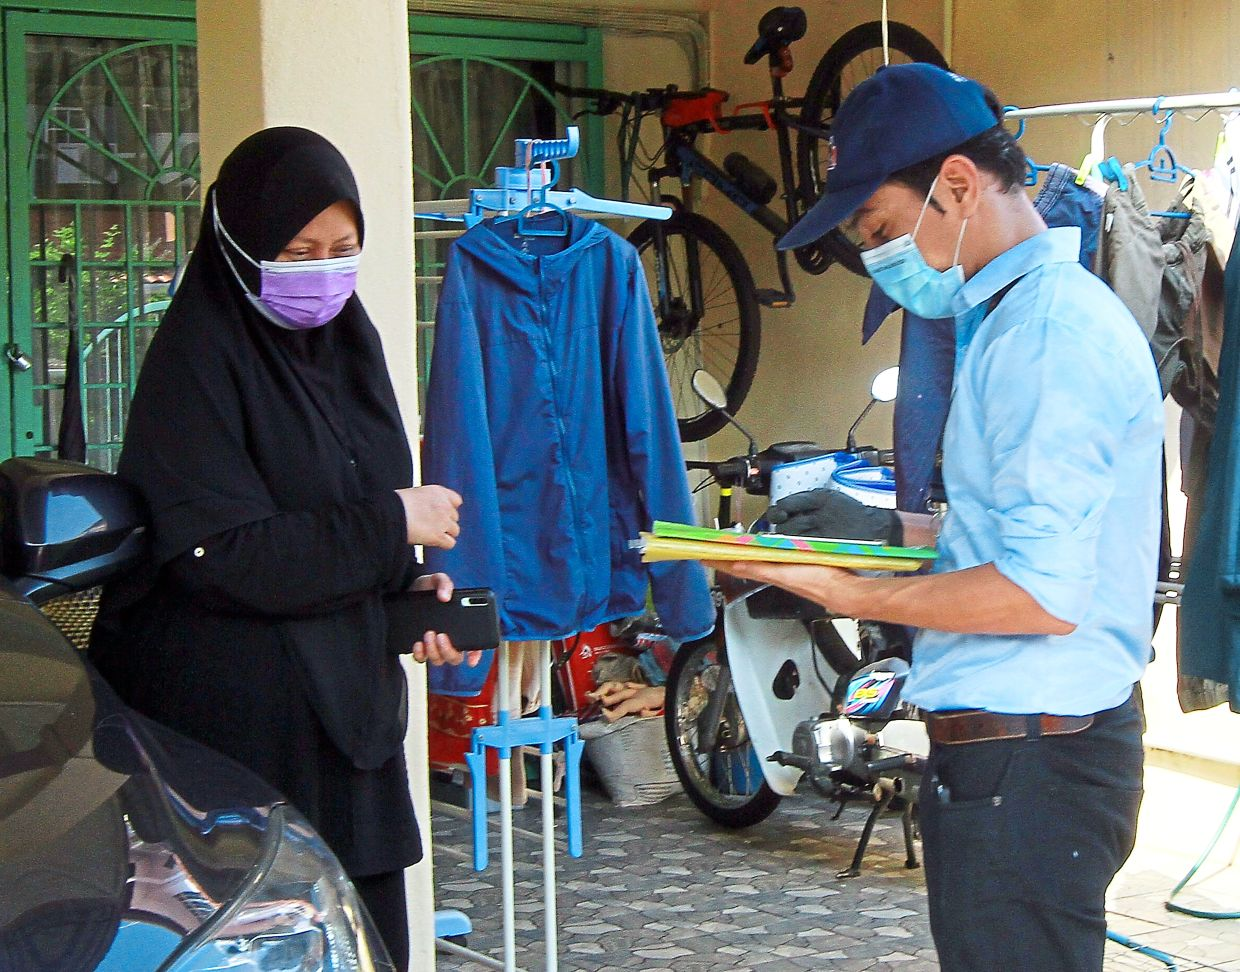 Puchong resident Noraidah Johar responding to the survey conducted face-to-face by an enumerator.